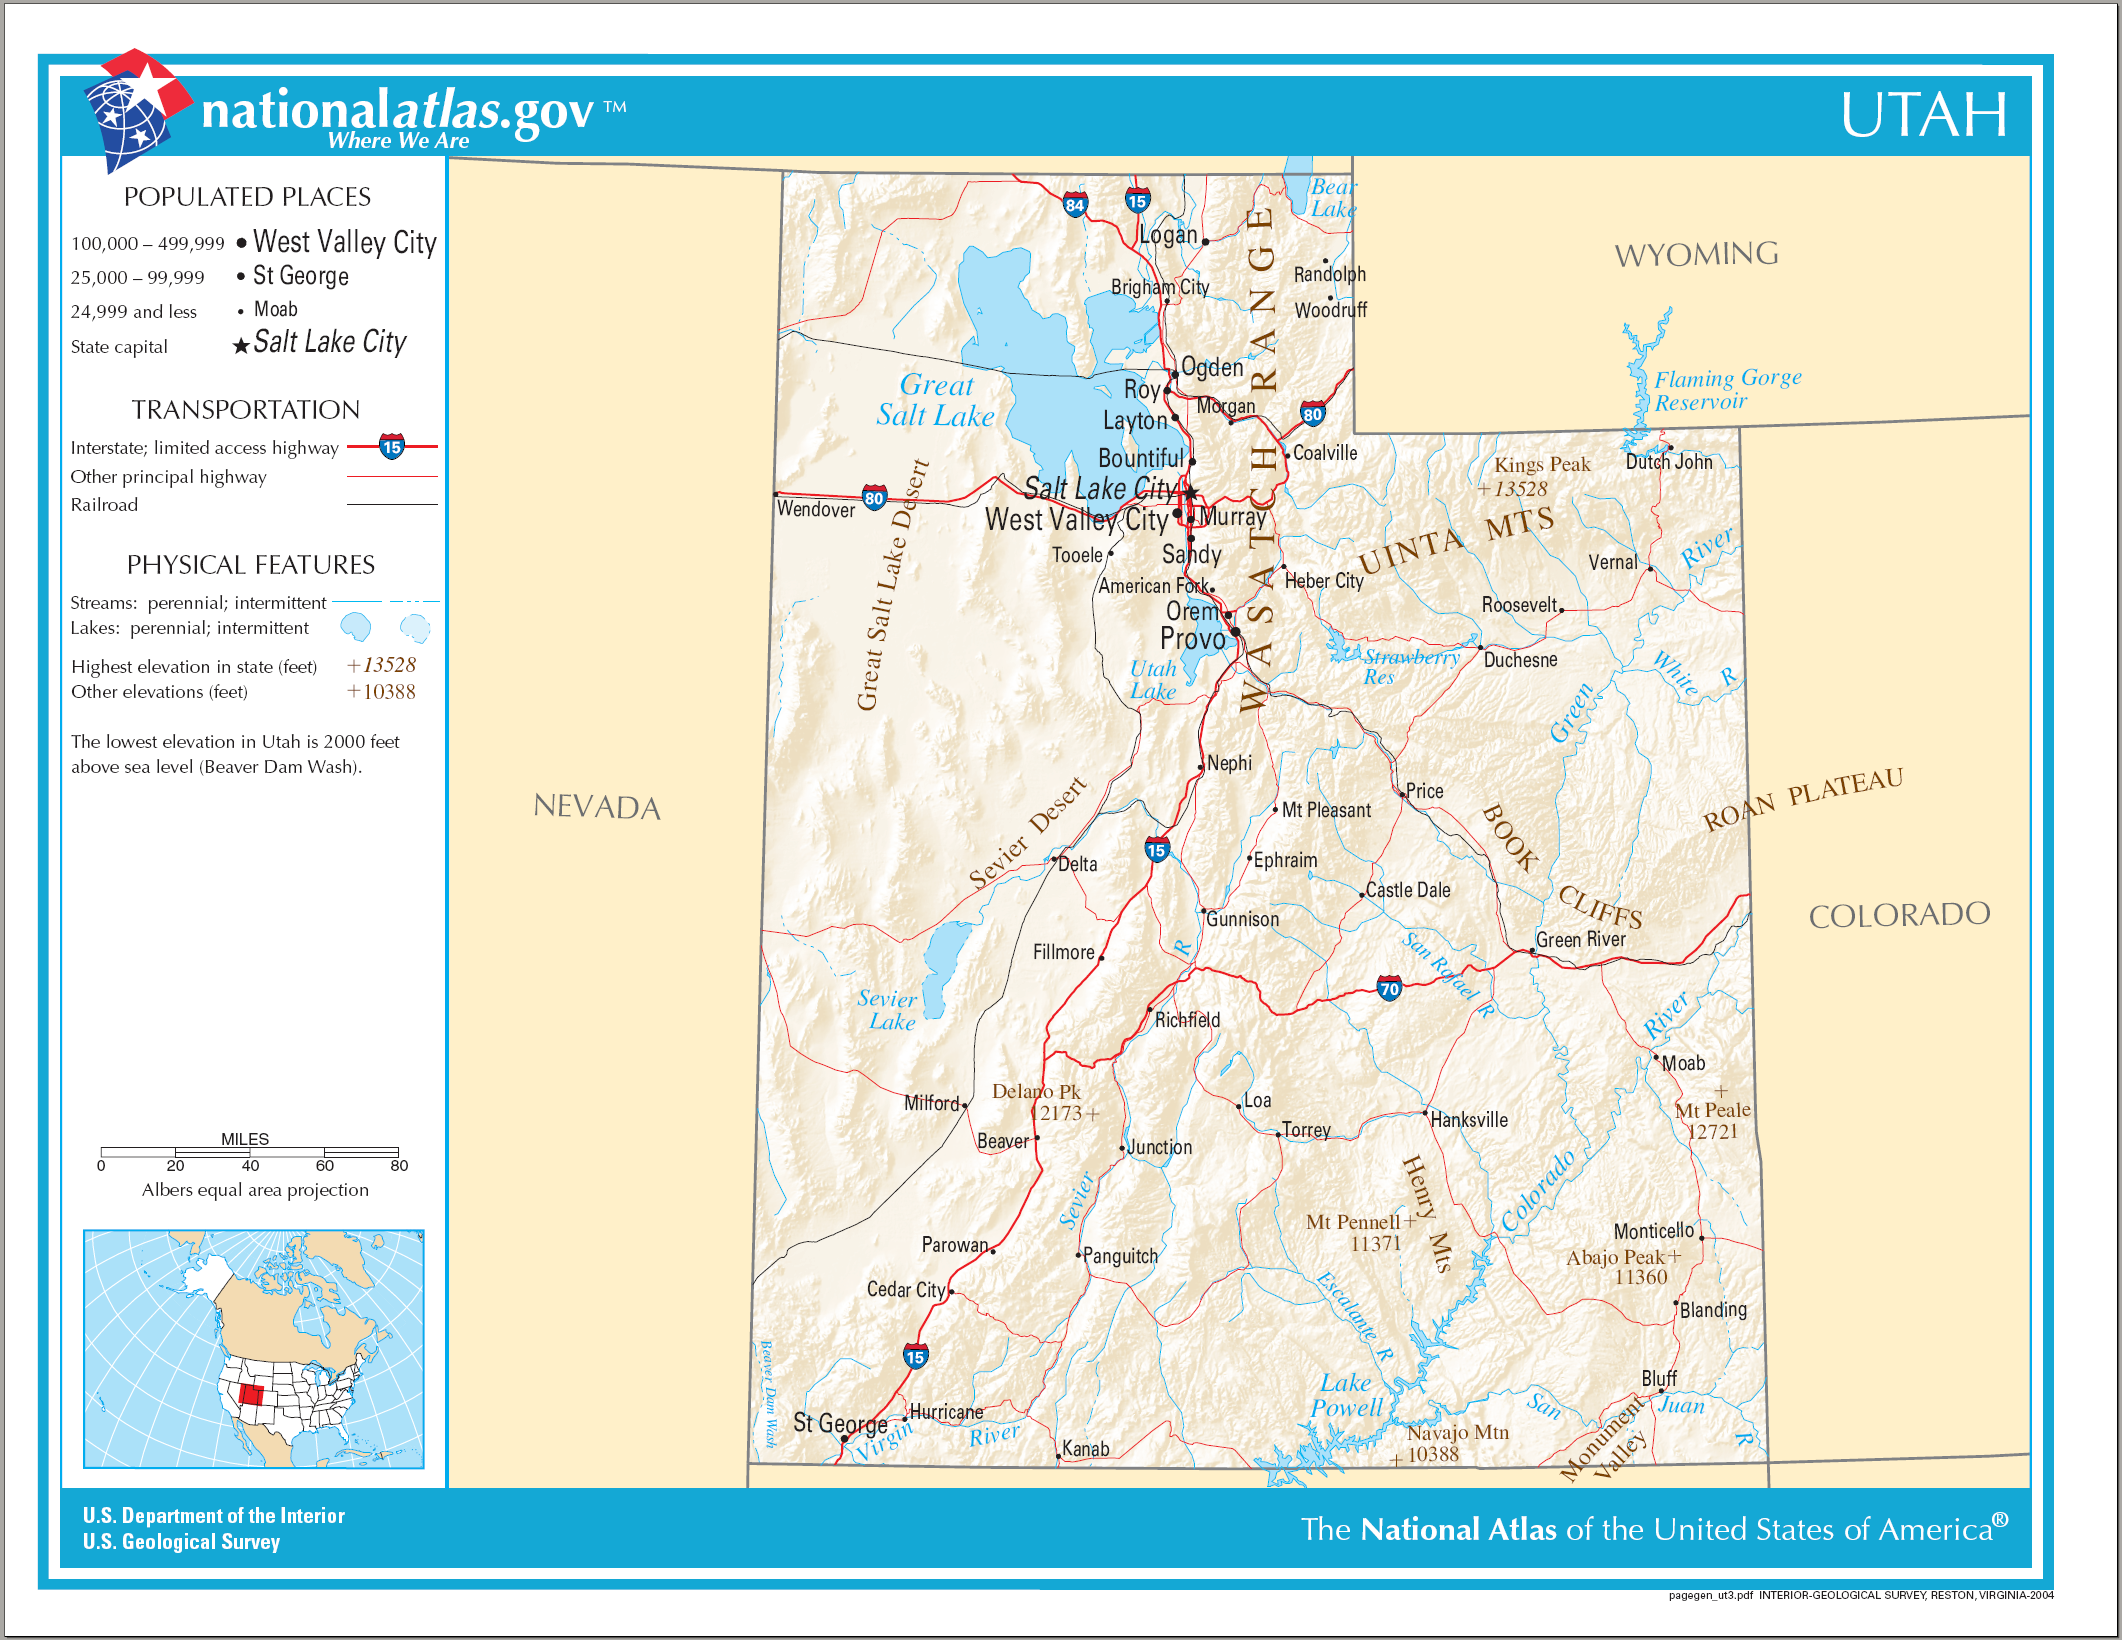 Utah Mountain Ranges And Rivers Map Pictures To Pin On Pinterest - Utah on a map of the usa